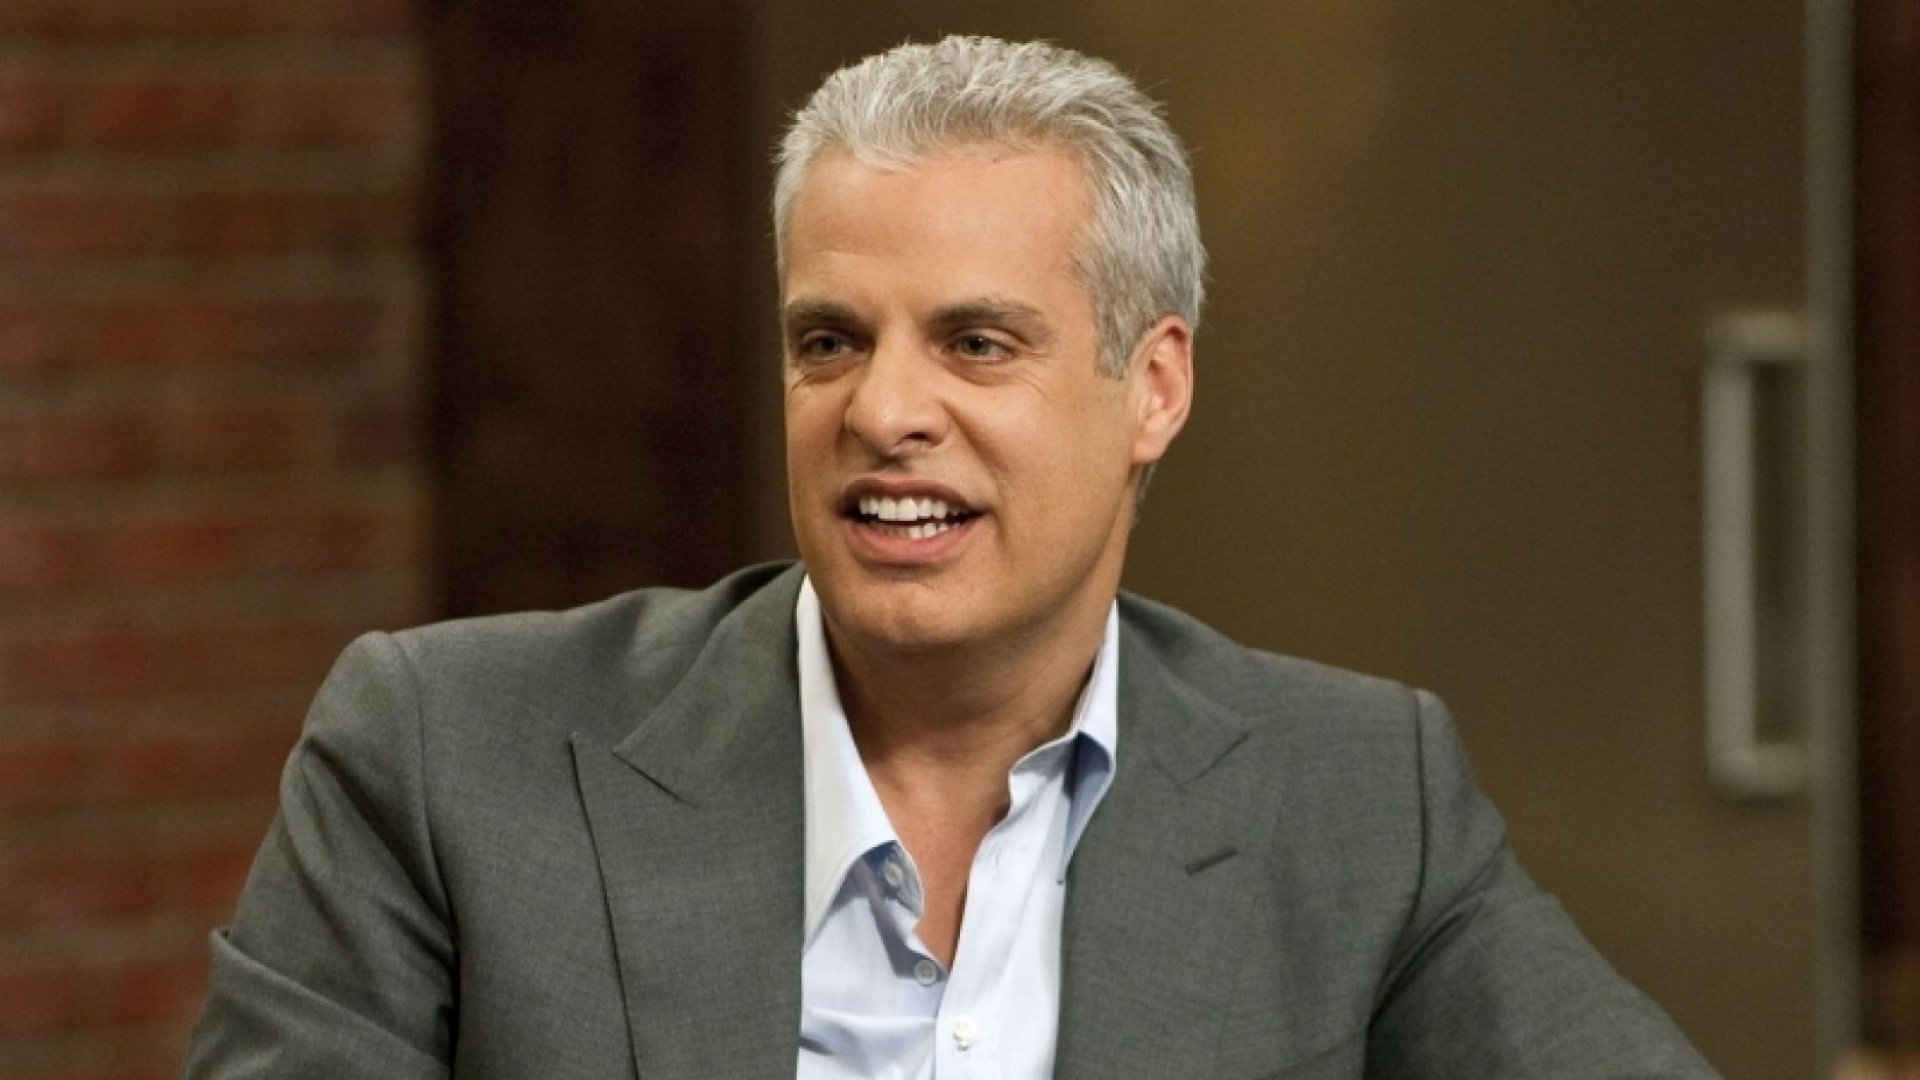 Chef Eric Ripert on Success and Happiness: An Exclusive Interview